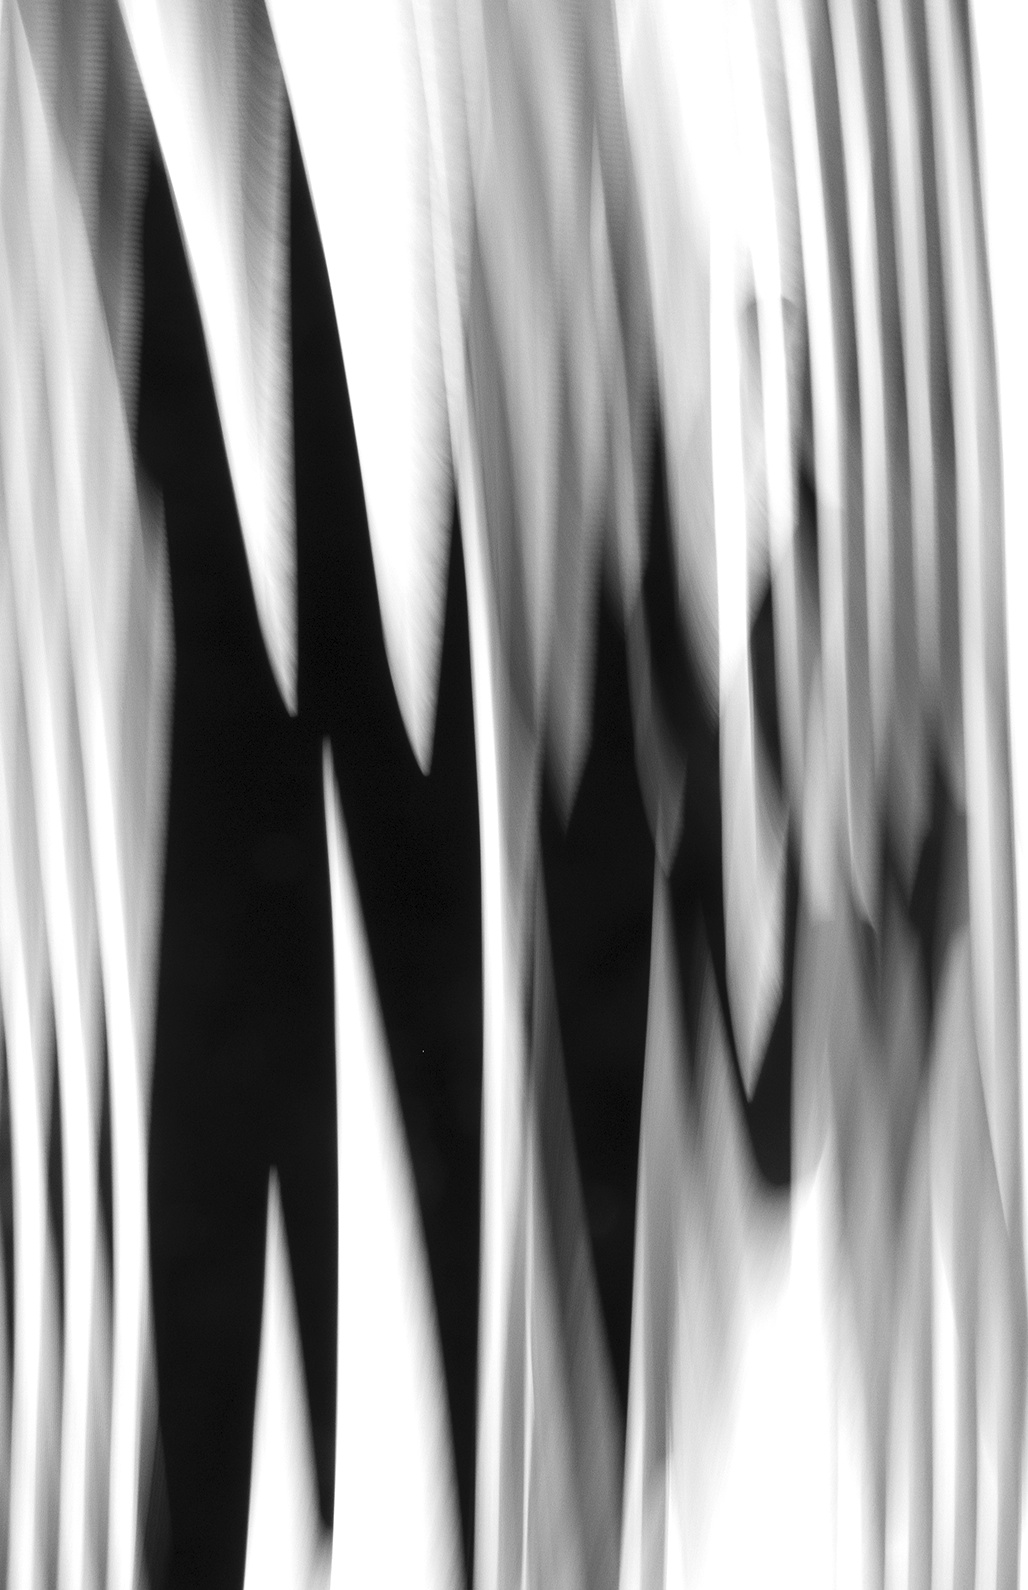 Untitled, 2014, Black and White Abstract Photography, Shirine Gill